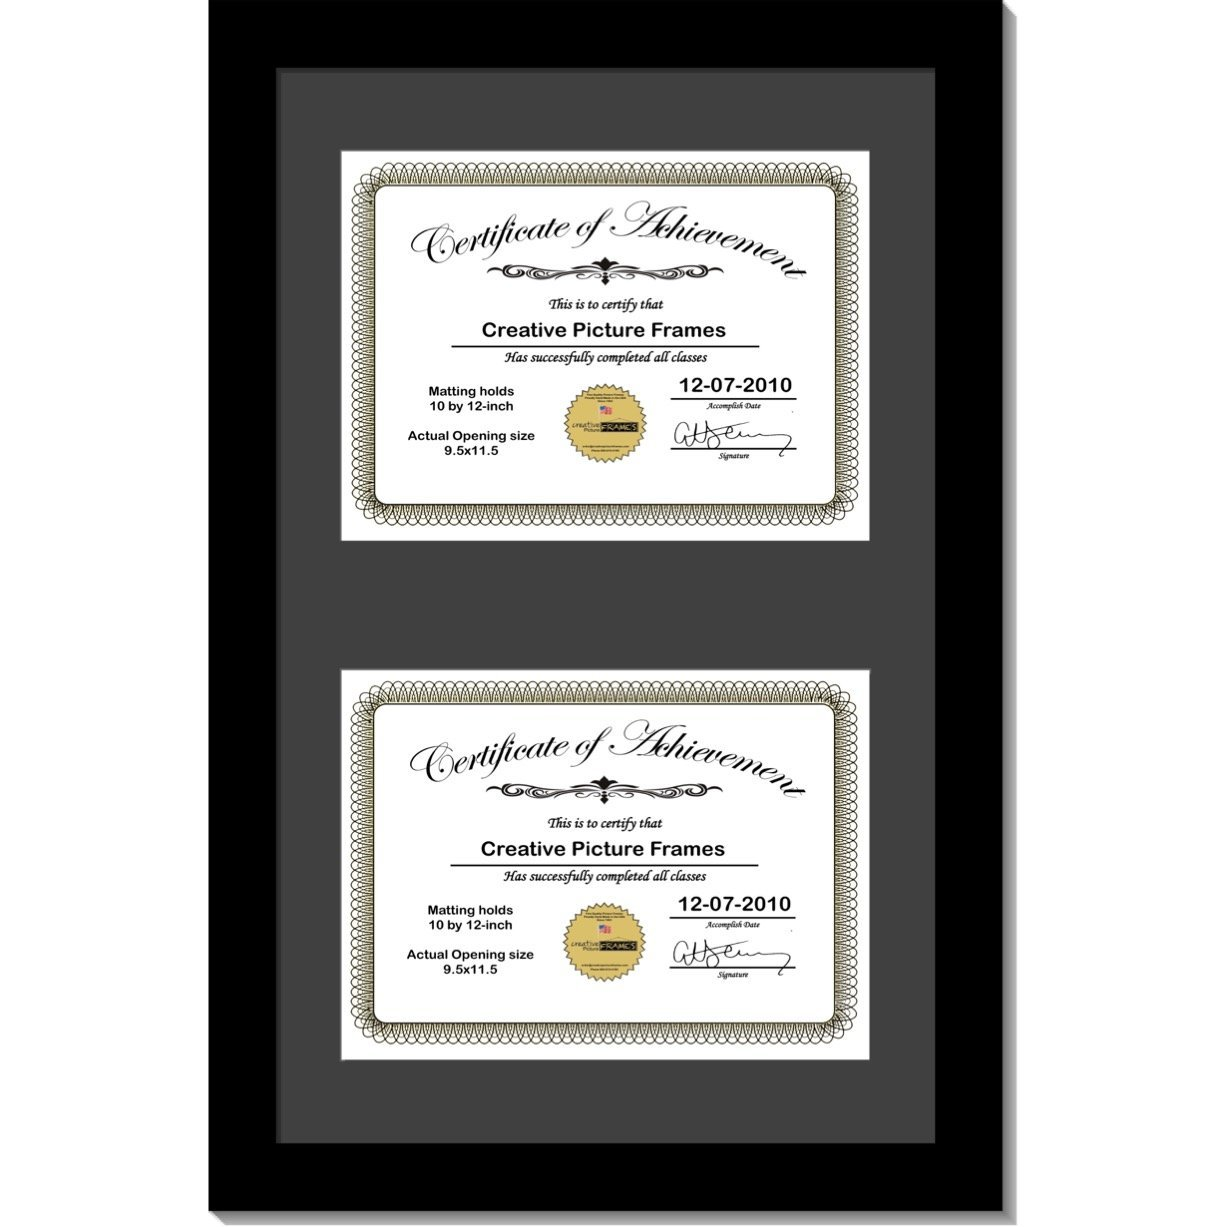 CreativePF [14x24bk-b] Black Vertical Double Diploma Frame with 2 opening Black Mat, Holds 2-10x12-inch Documents with Wall Hanger